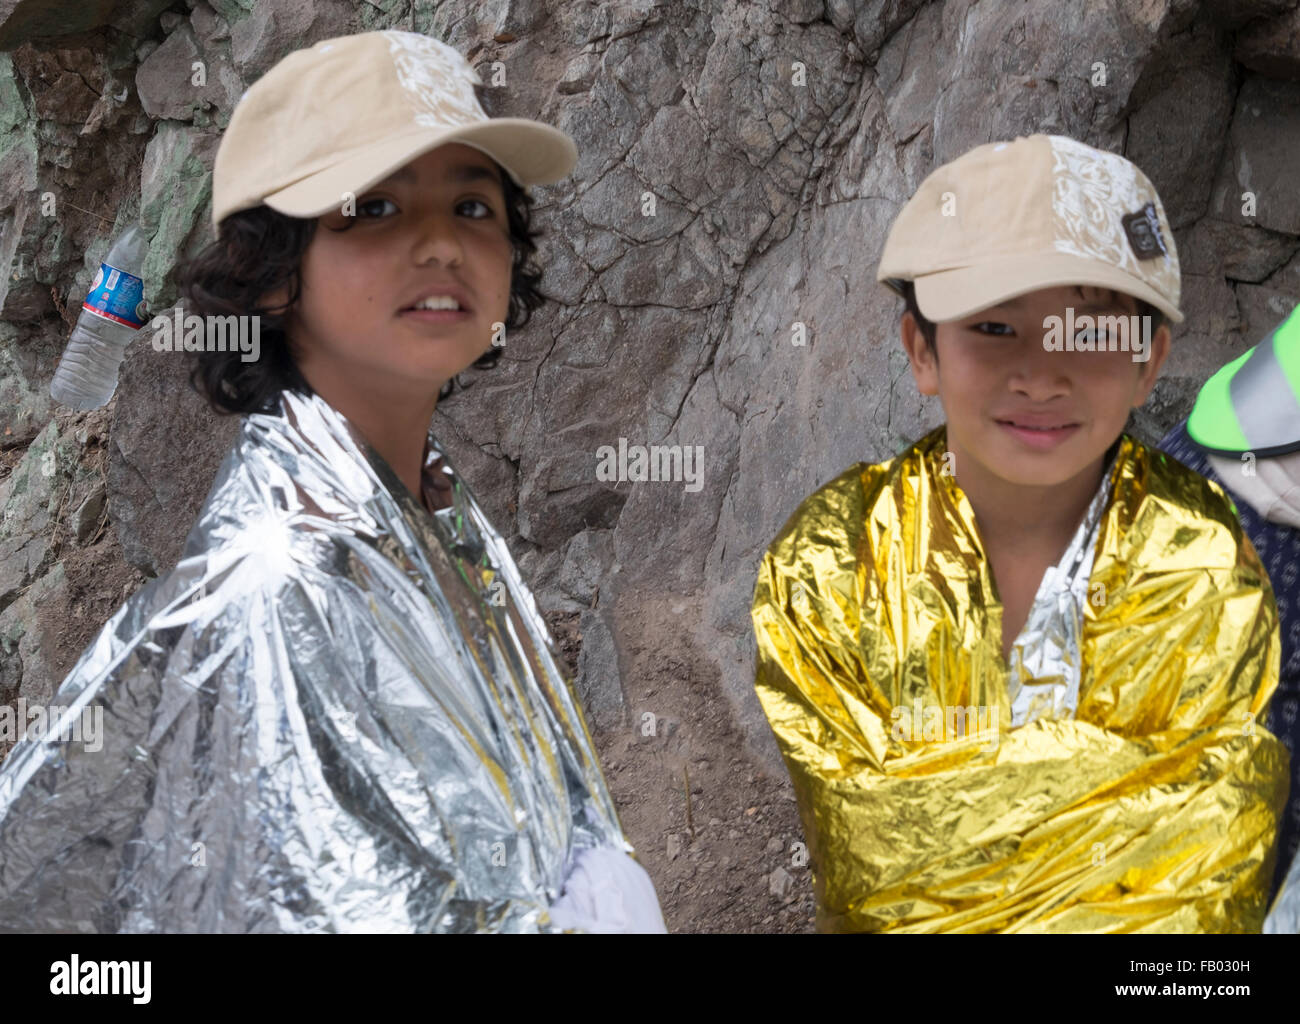 Two Afghani refugee children smile as they get warm in hats and blankets after crossing from Turkey to Lesvos, Greece. - Stock Image